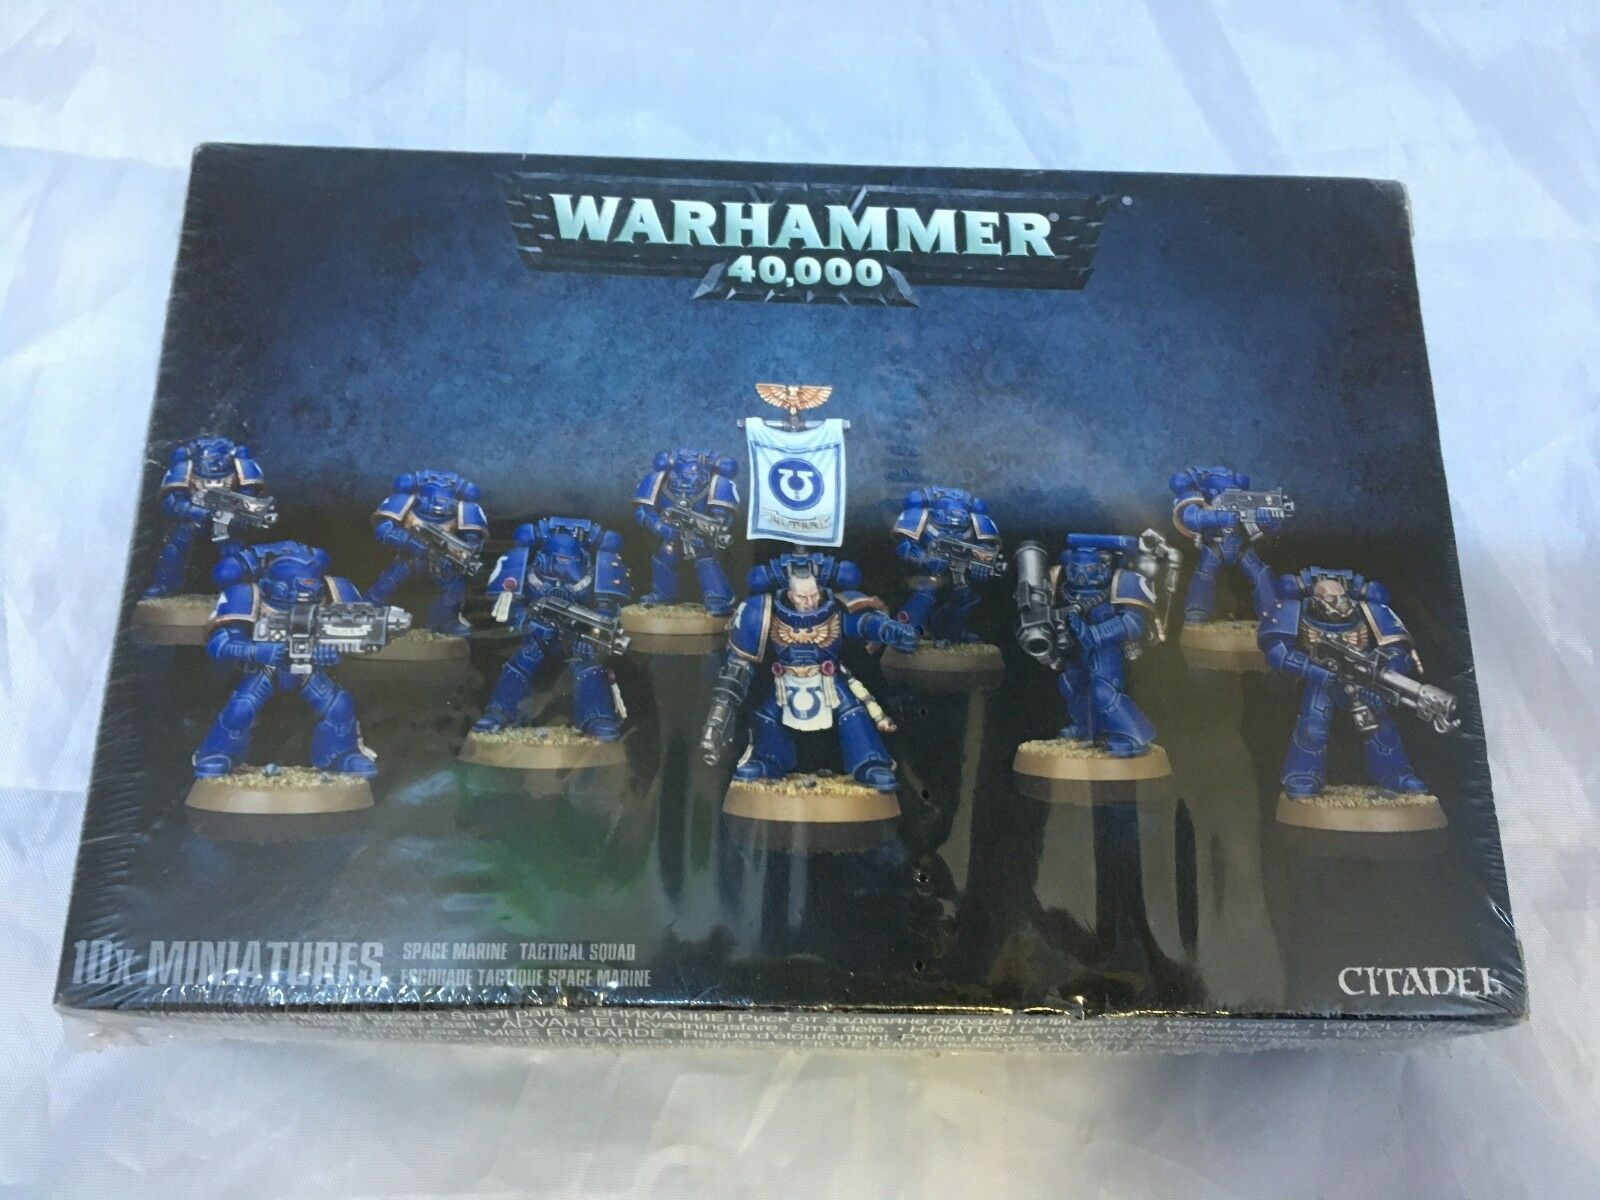 WARHAMMER 40,000 10 x Miniatures Space Marine Tactical Squad CITADEL Brand New